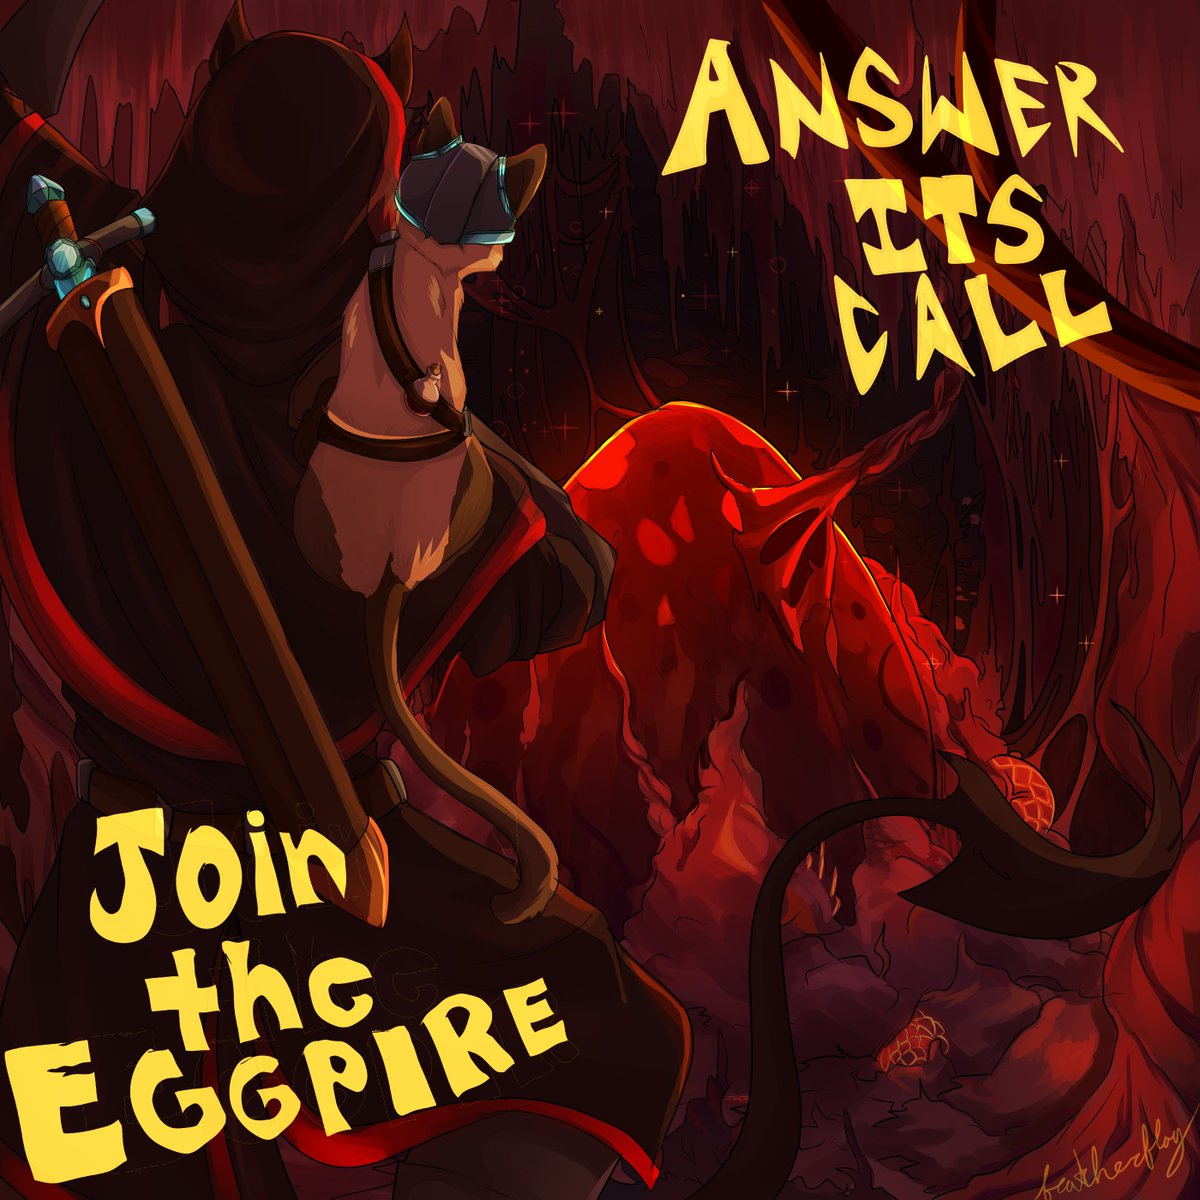 Replying to @featherzArt: Here's a version with a slogan! #eggpire